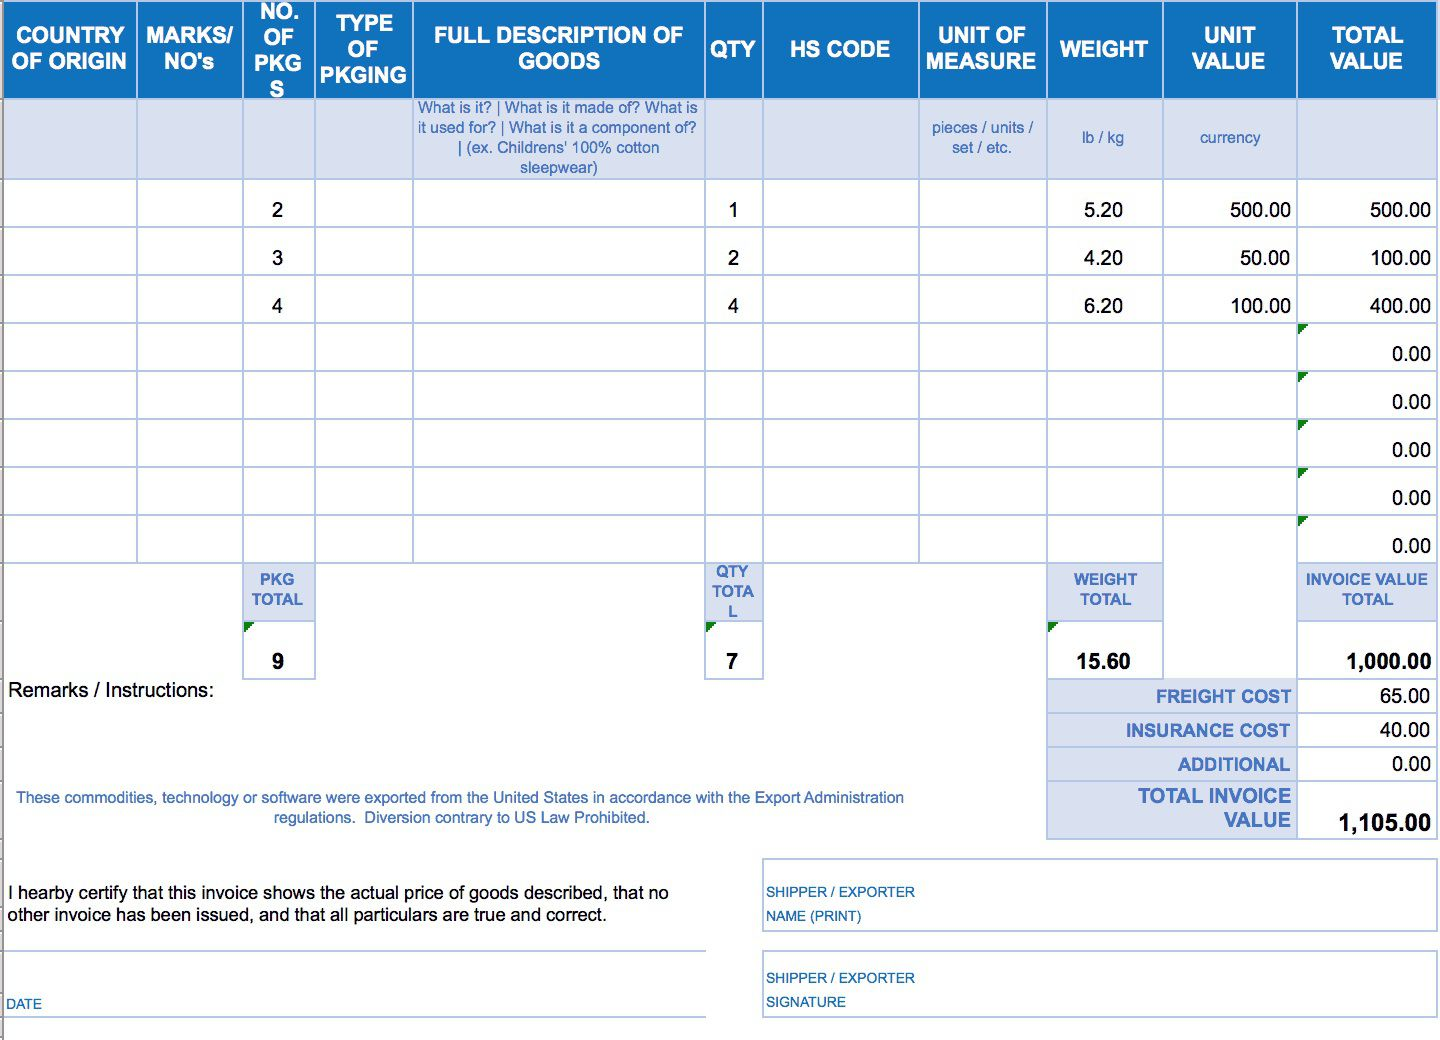 006 Impressive Commercial Invoice Template Excel Image  Free DownloadFull